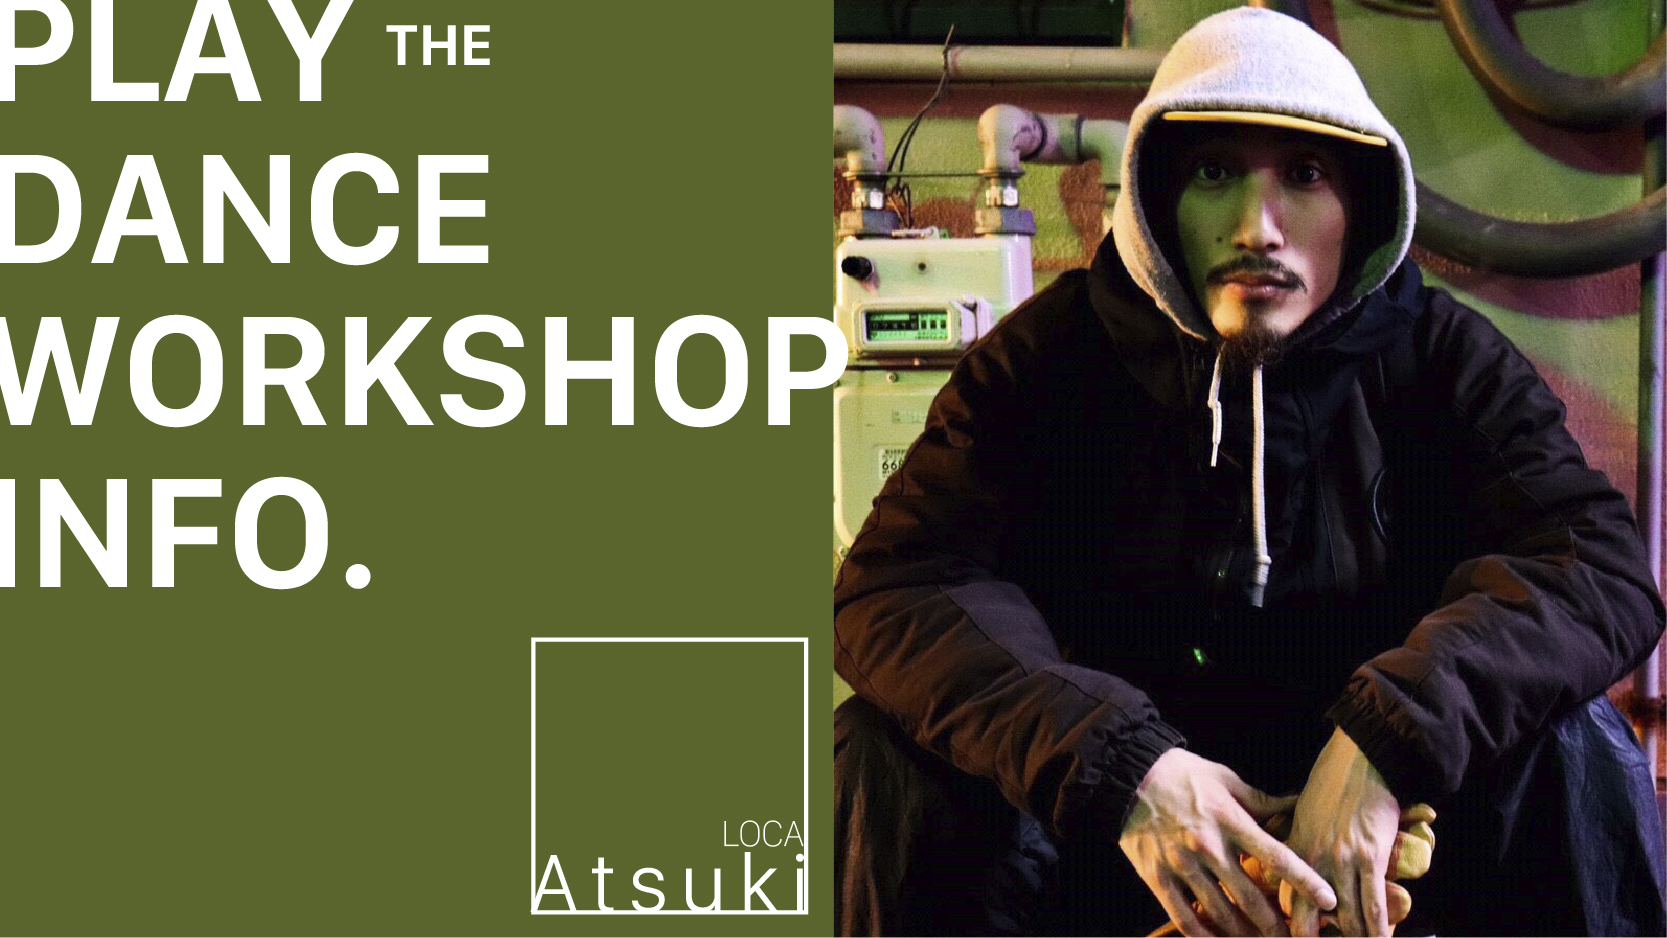 Atsuki from LOCA WORK SHOP